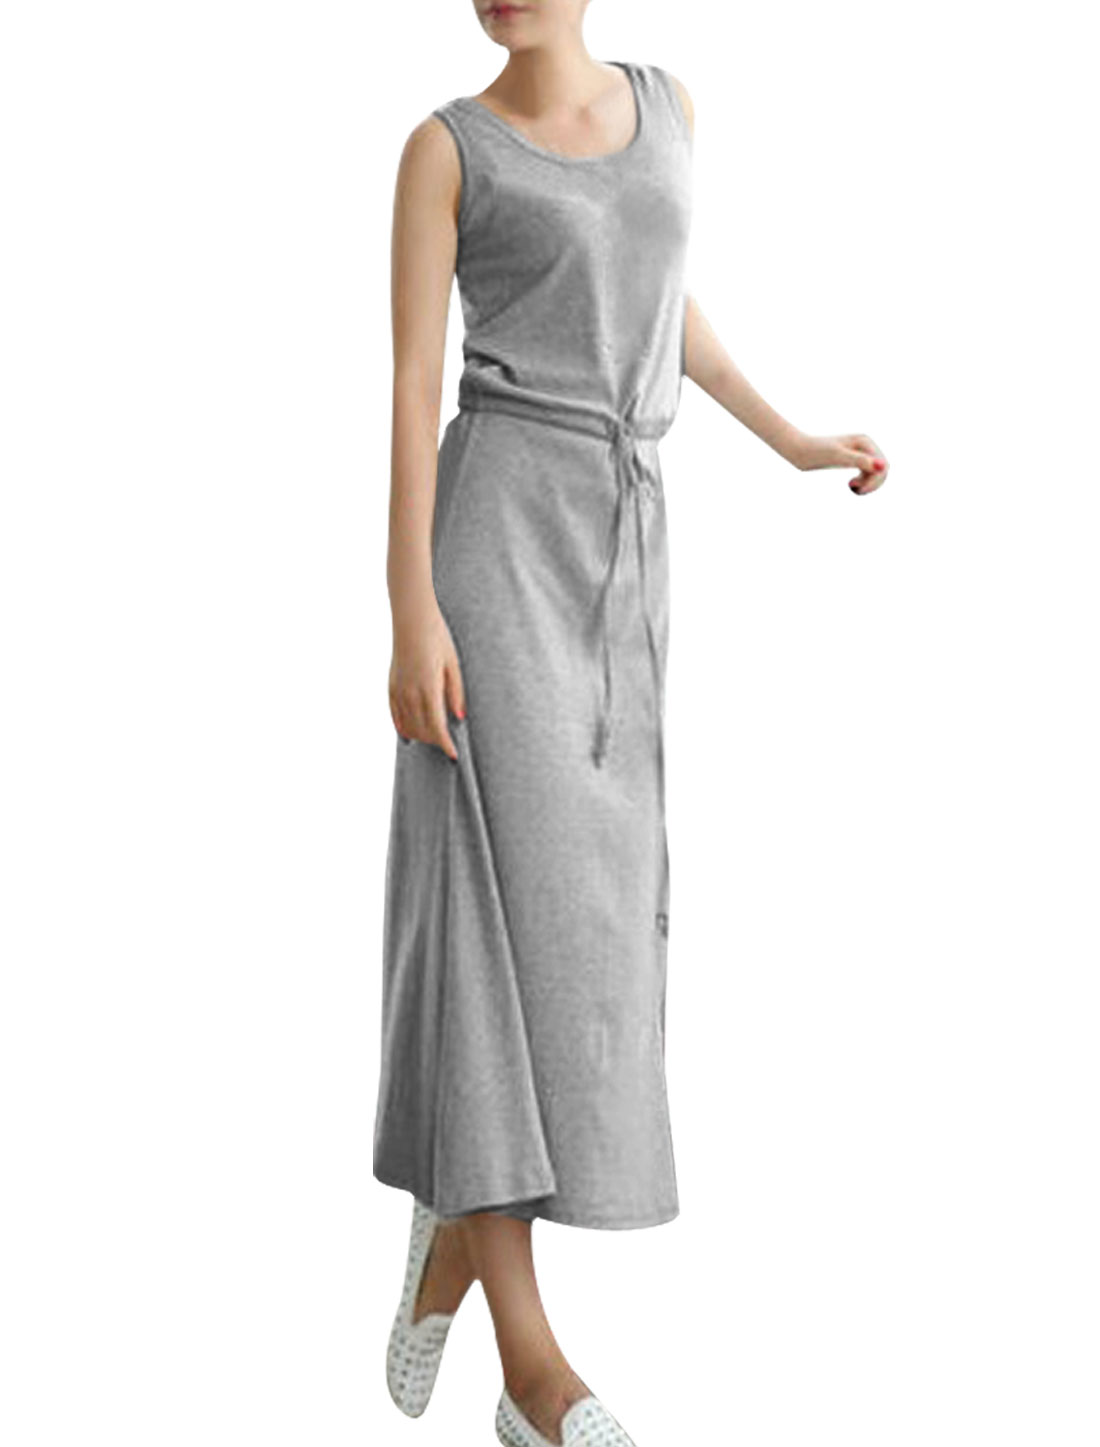 Ladies Round Neck Hooded Drawstring Mid-Calf Length Light Gray Dress XS